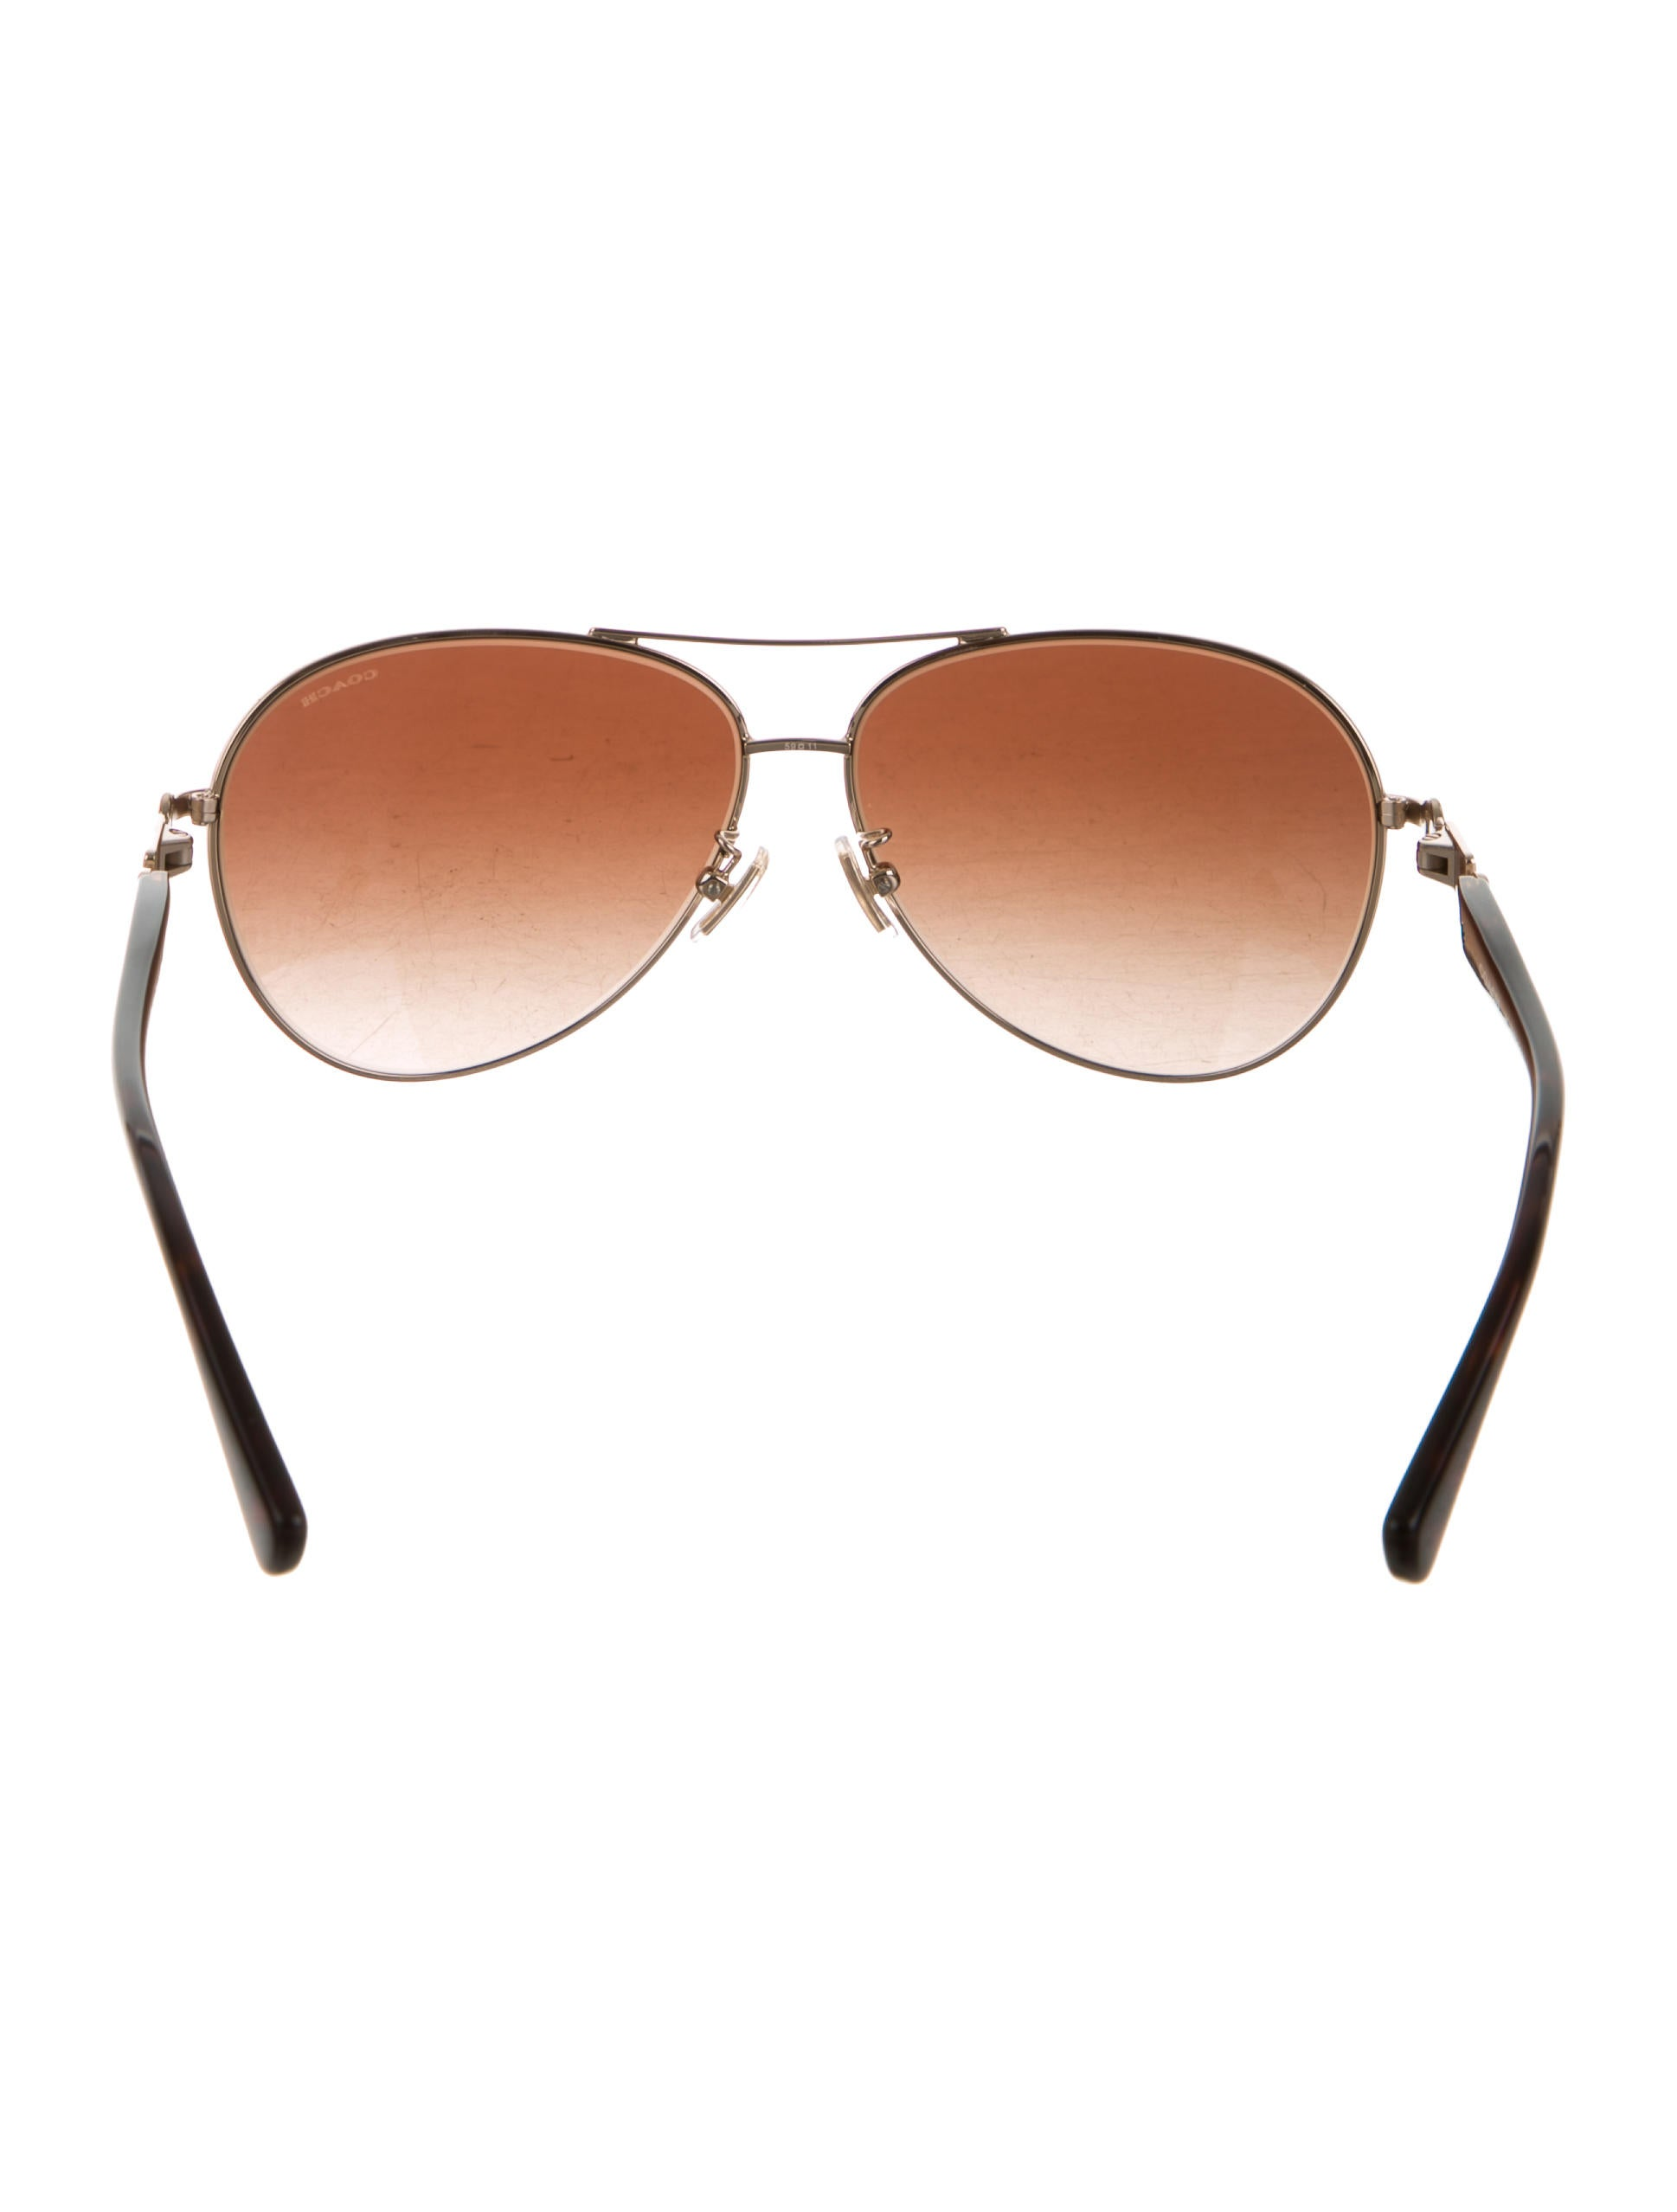 c15a0b8e6a7 Coach Aviator Polarized Sunglasses